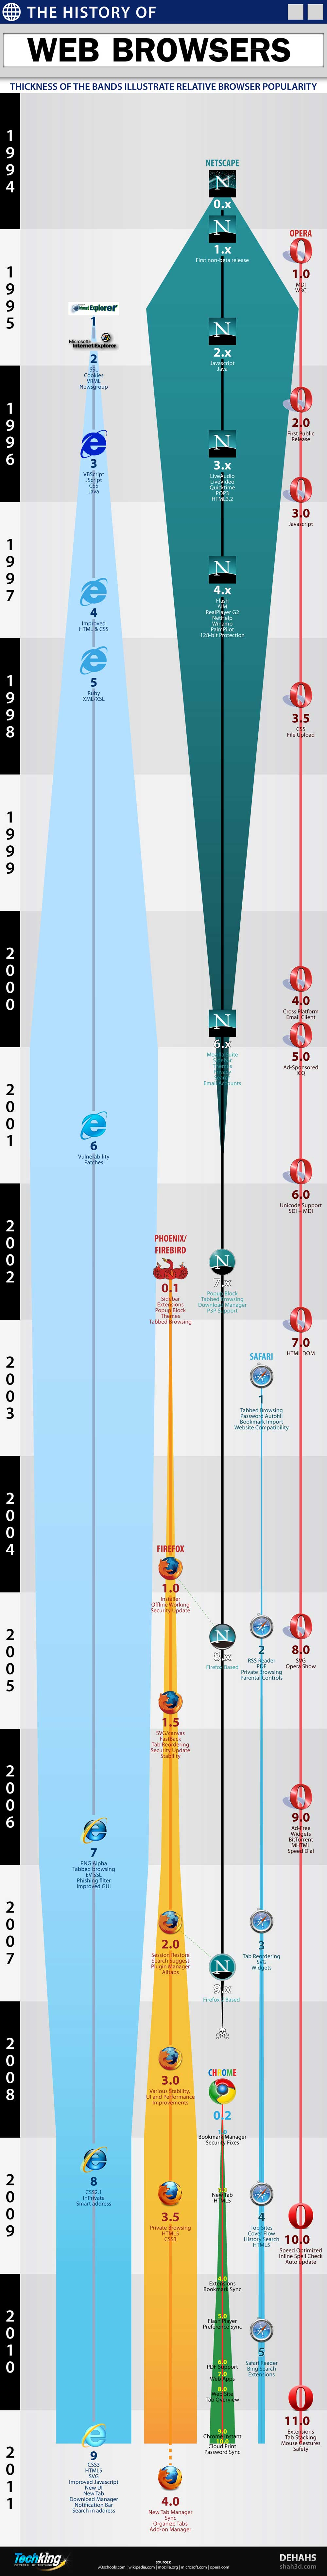 Browser Evolution – The History of Web Browsers - Infographic